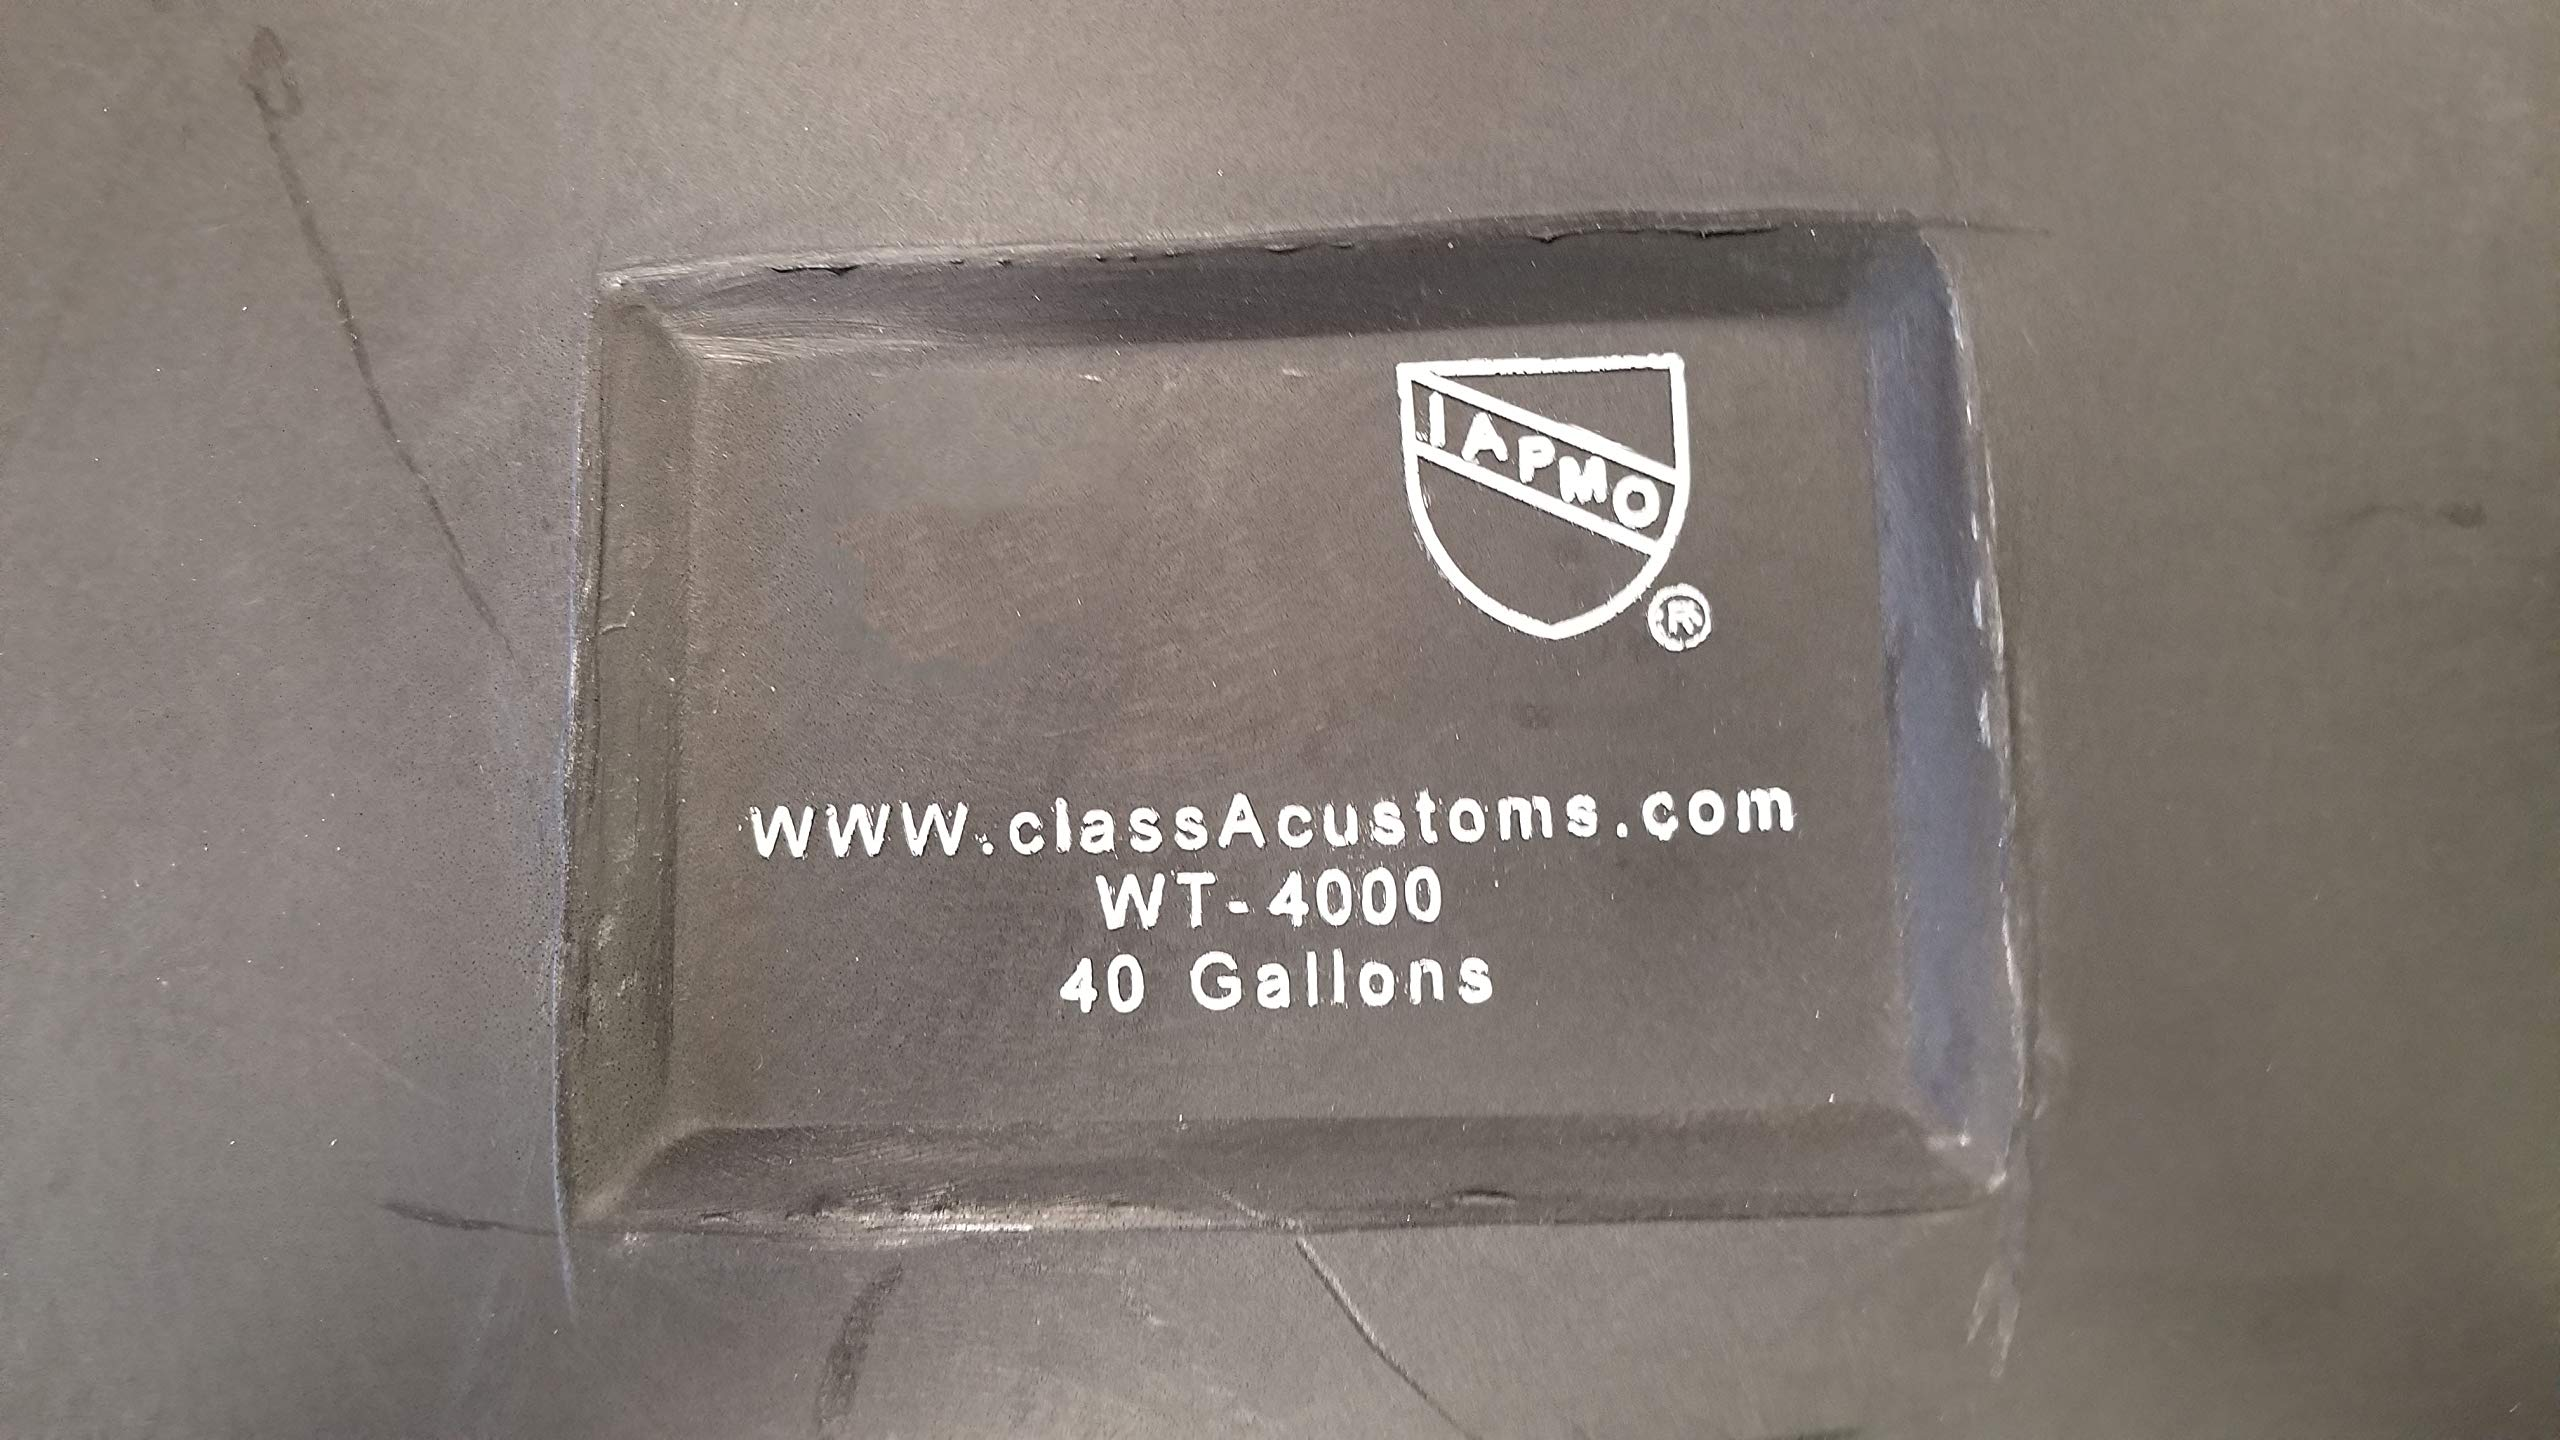 Class A Customs 40 Gallon RV Waste Black Gray Water Holding Tank Concession 56.50'' x 24.50'' x 9'' WT-4000 by Class A Customs (Image #3)